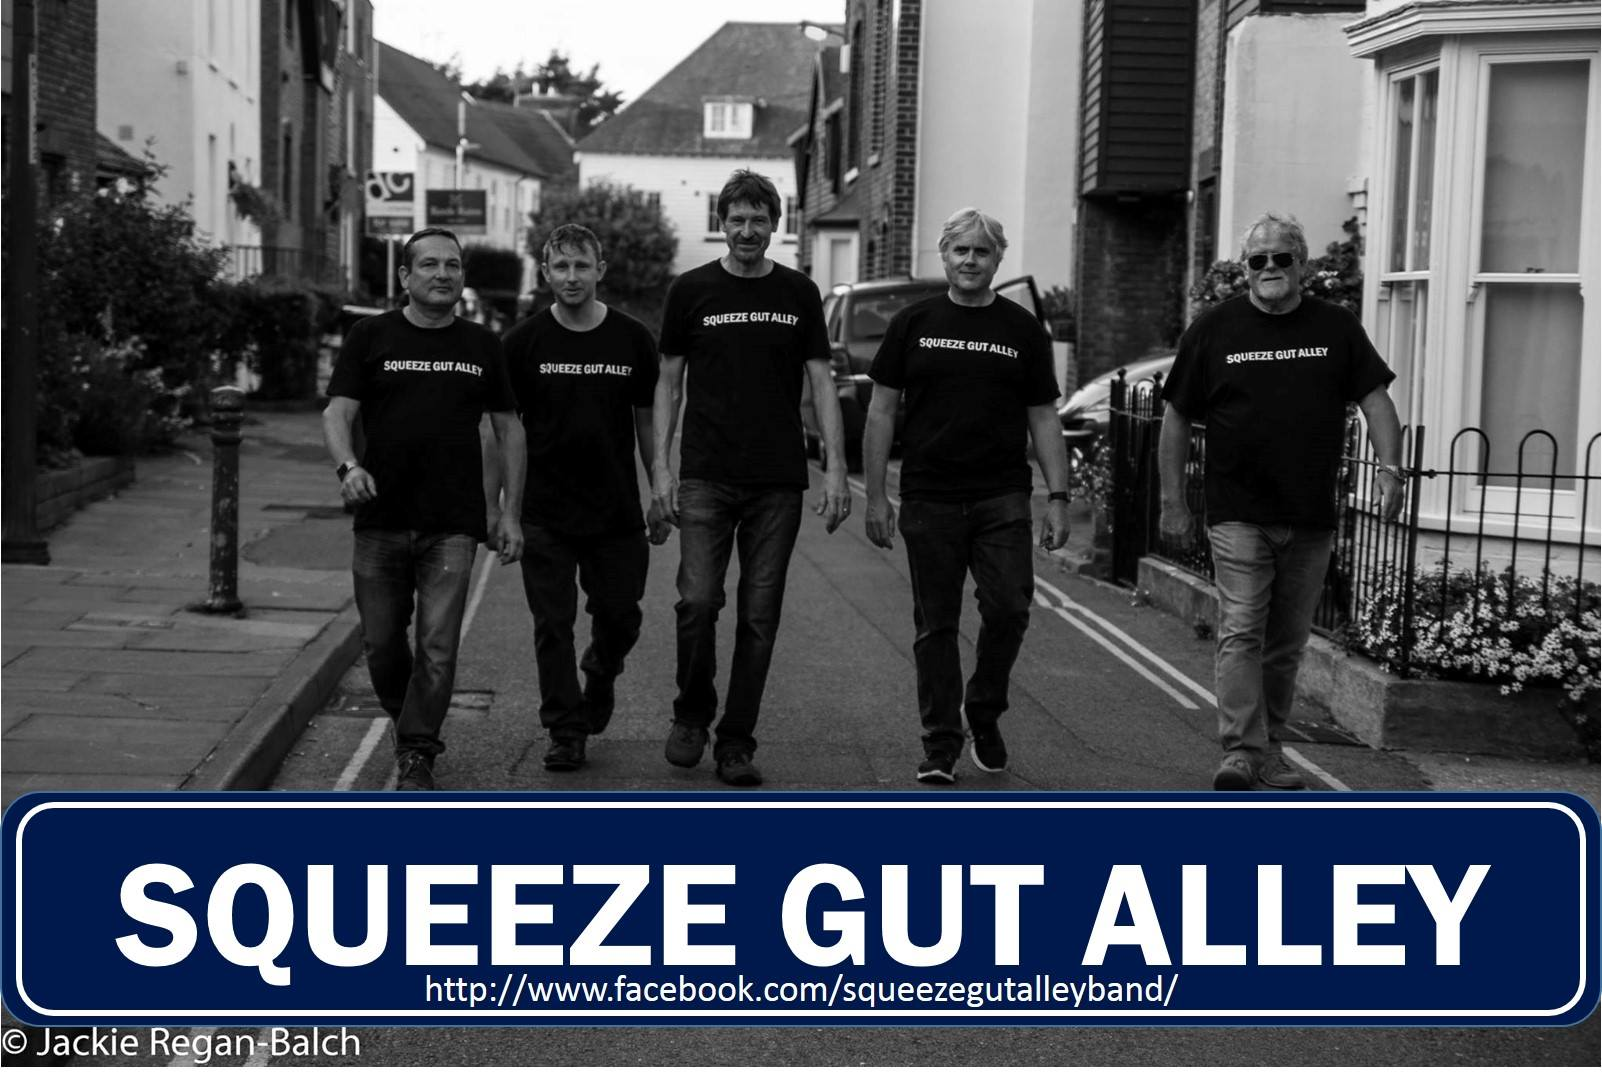 Squeez Gut Alley